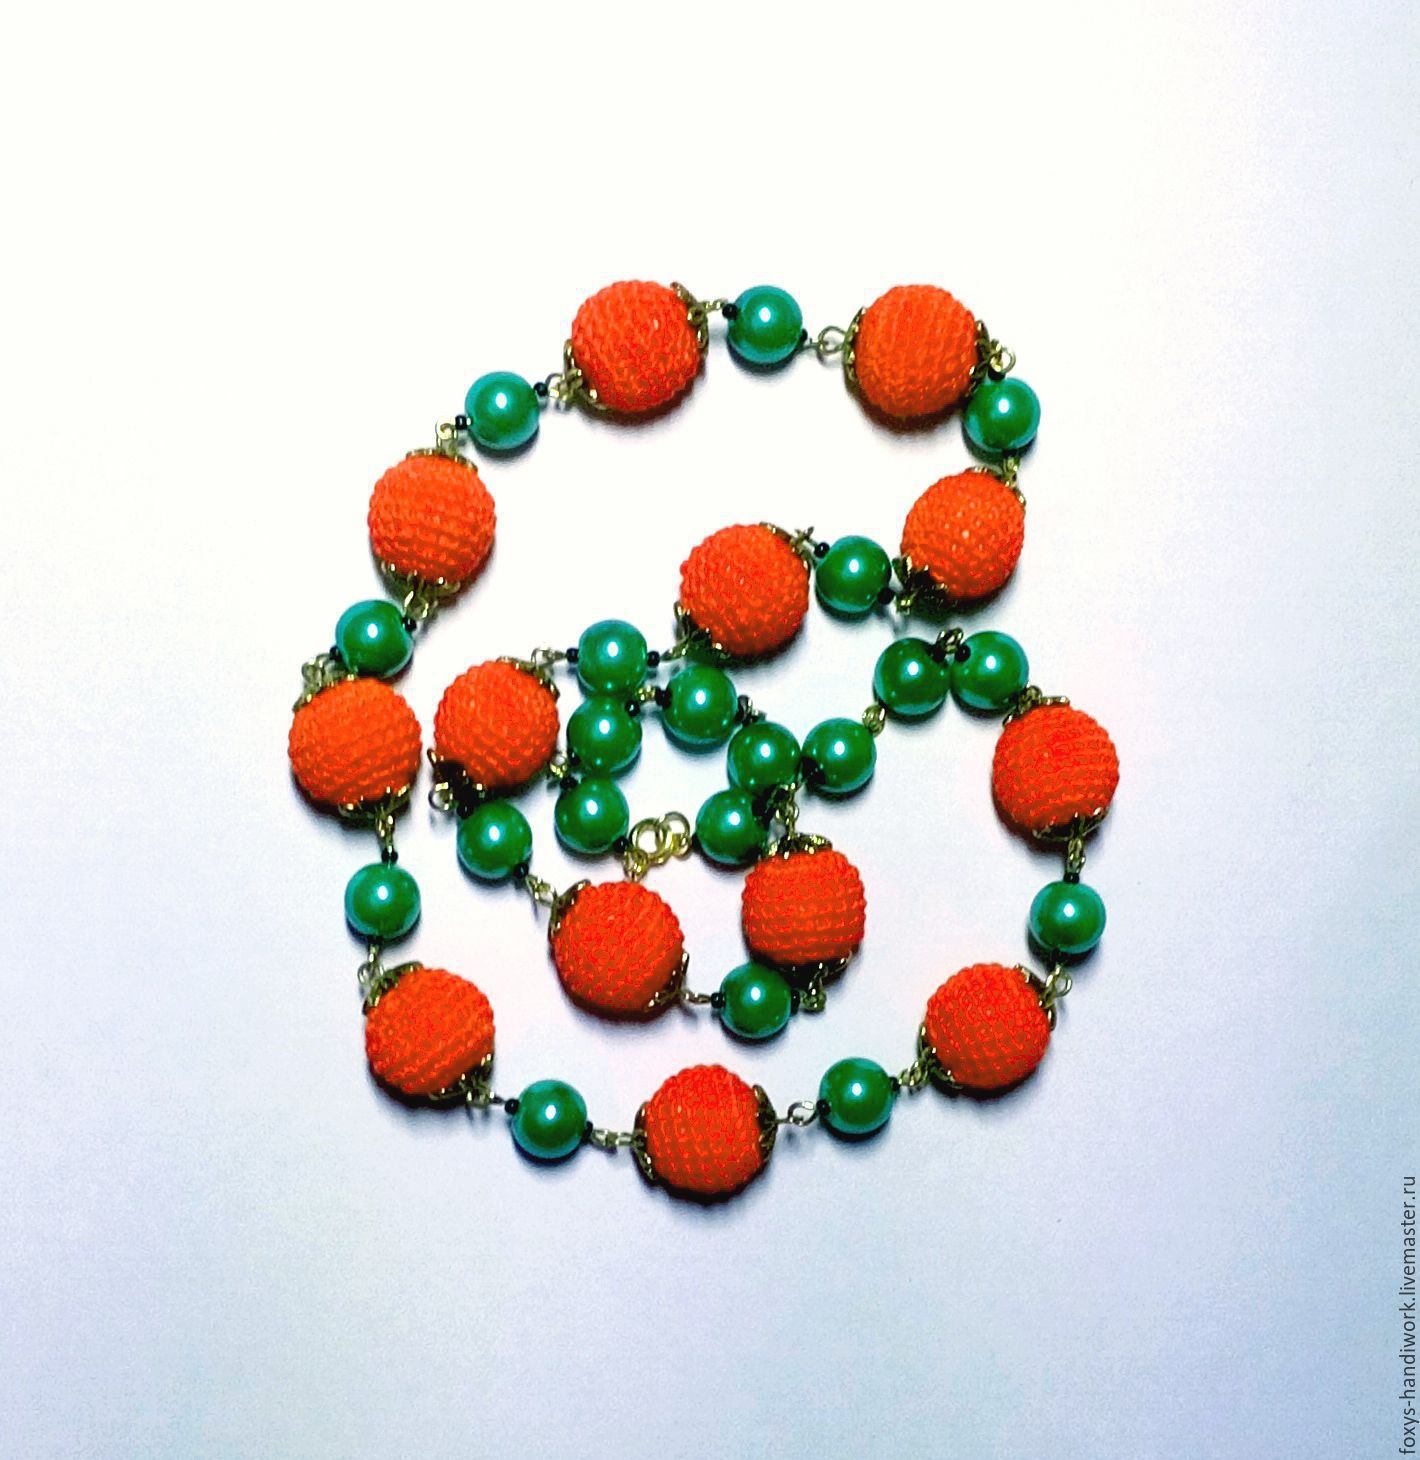 Beads 'Orange mood' with knit and glass beads, on, Necklace, Tula,  Фото №1